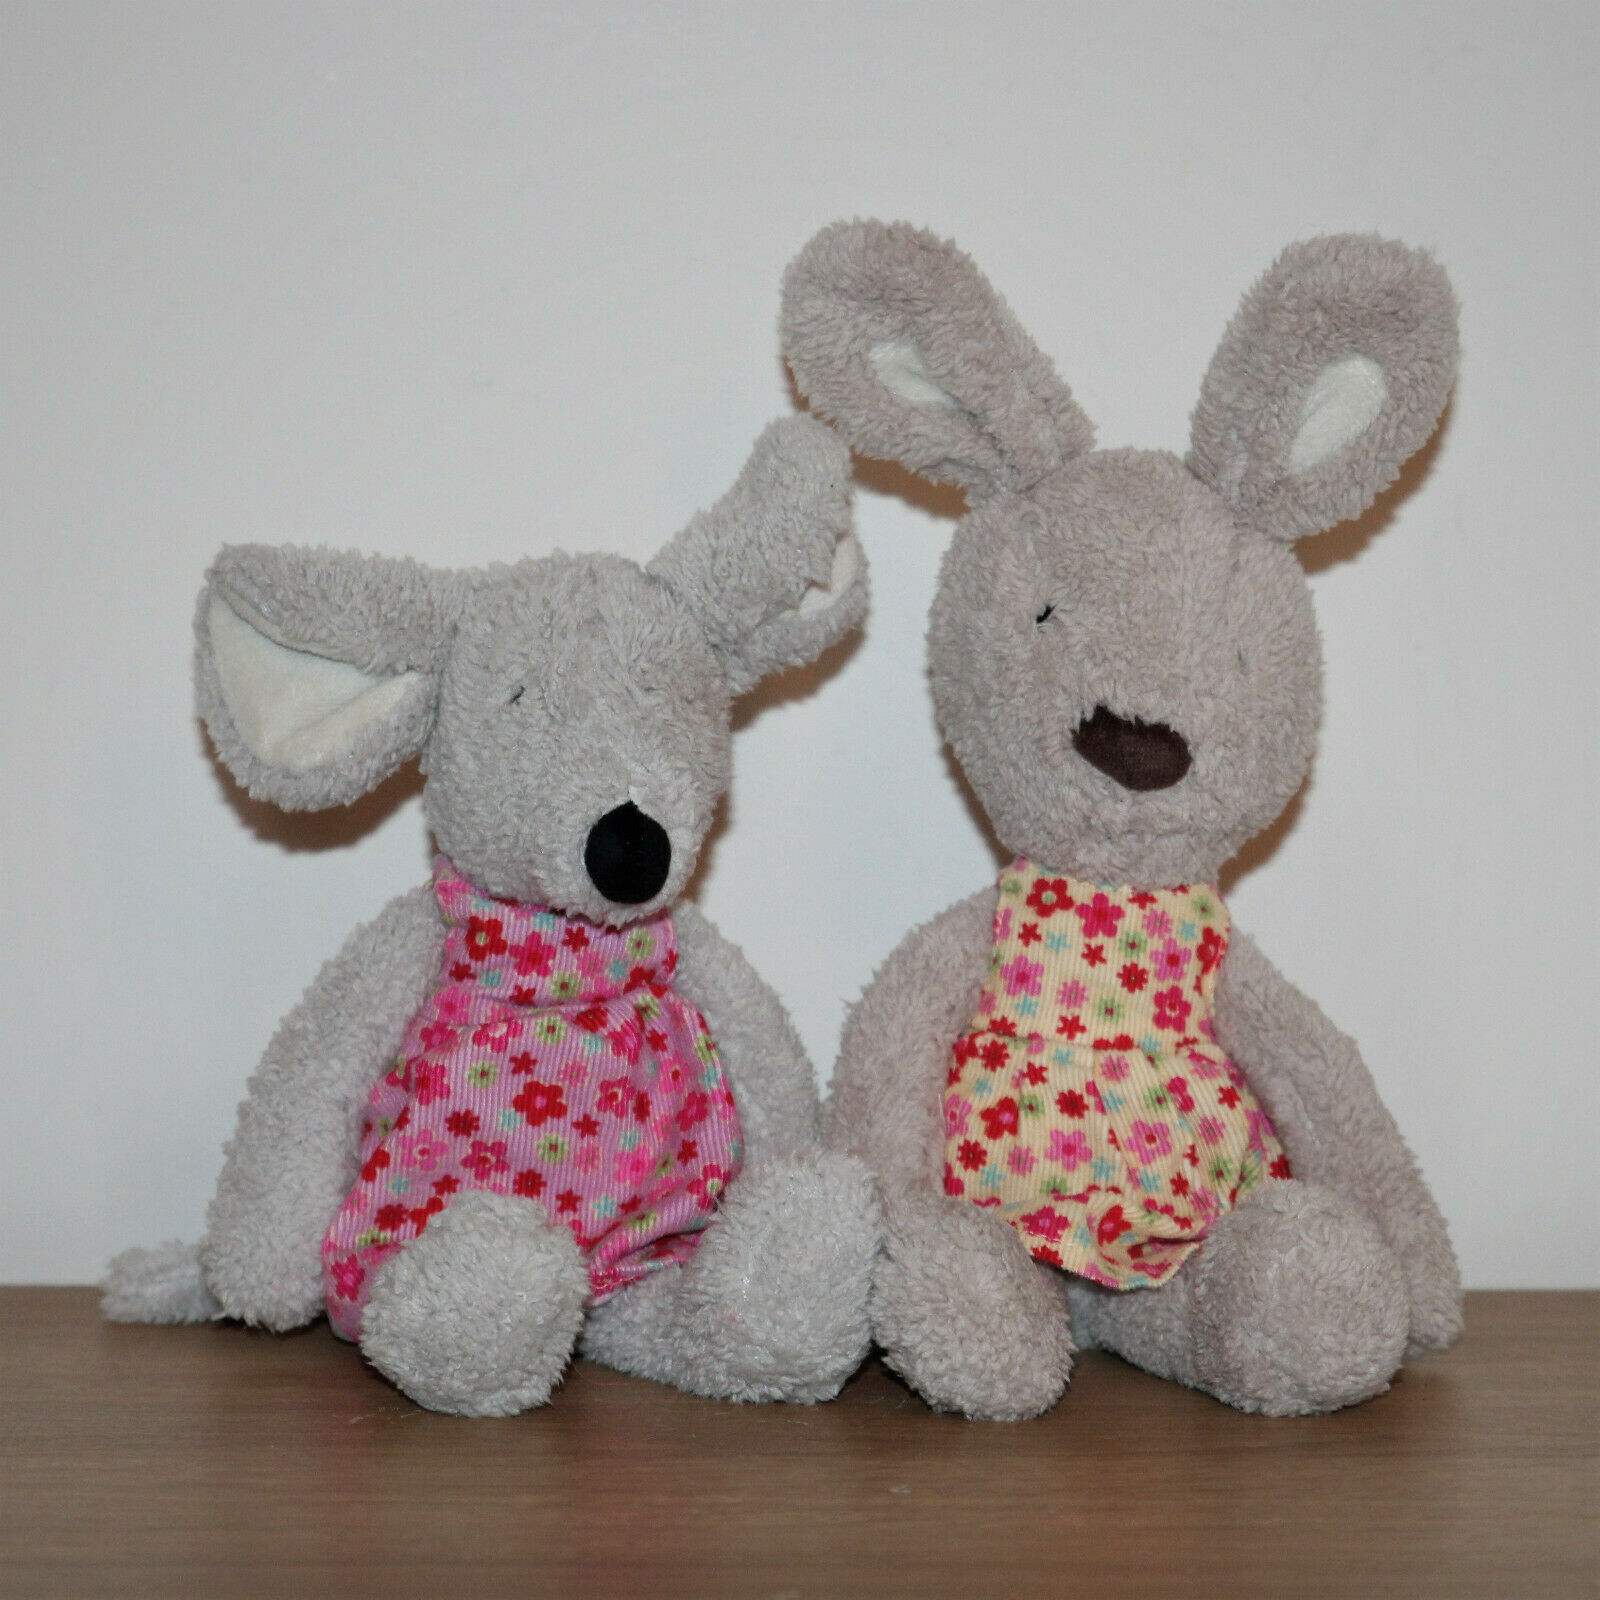 Jellycat Floral Friends - Molly Mouse & Beatrice Bunny - Soft Cuddly Toys - VGC